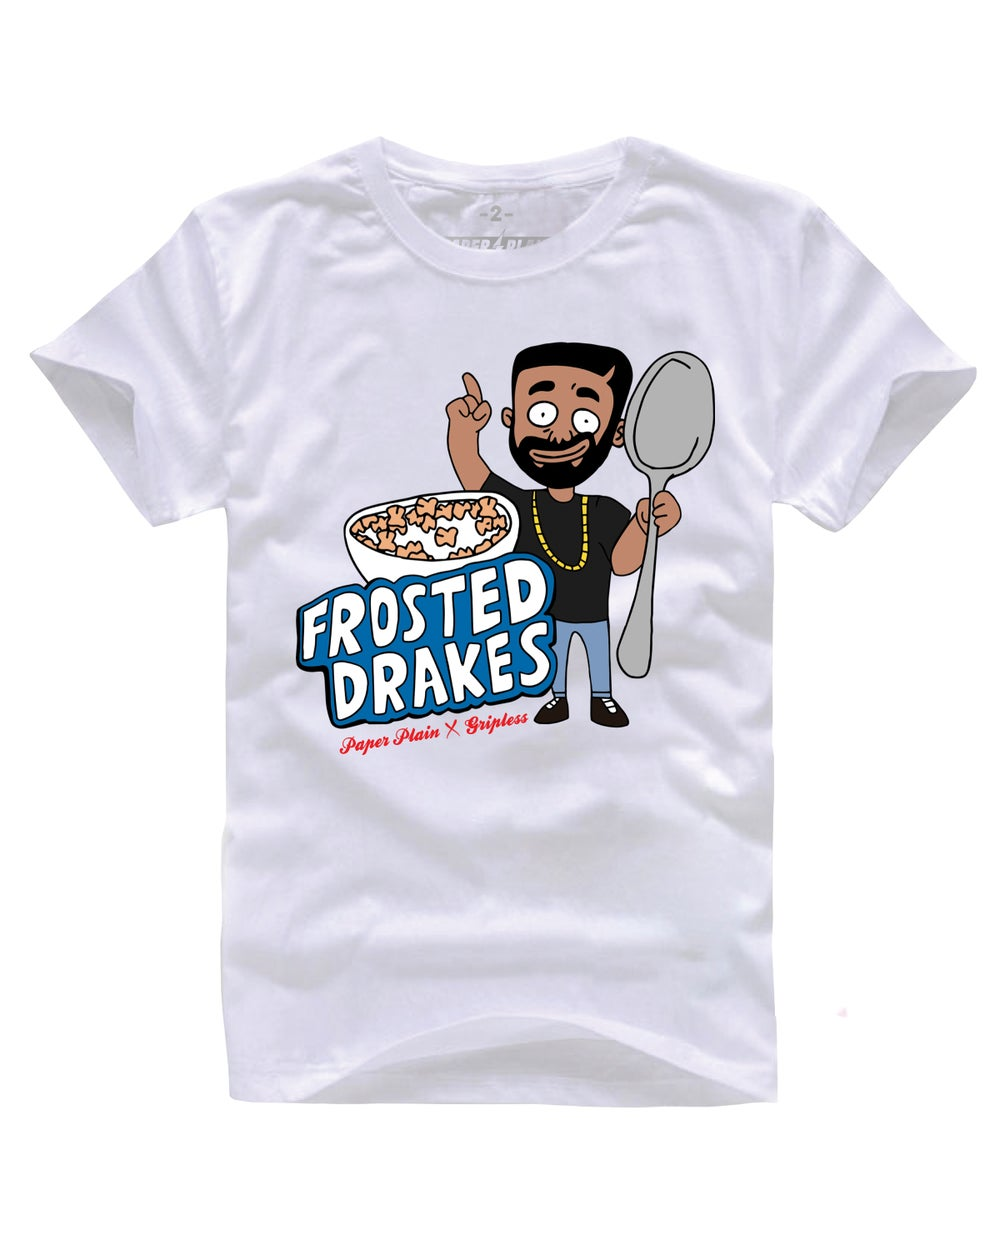 FROSTED DRAKES TEE WHITE (GRIPLESS COLLAB)